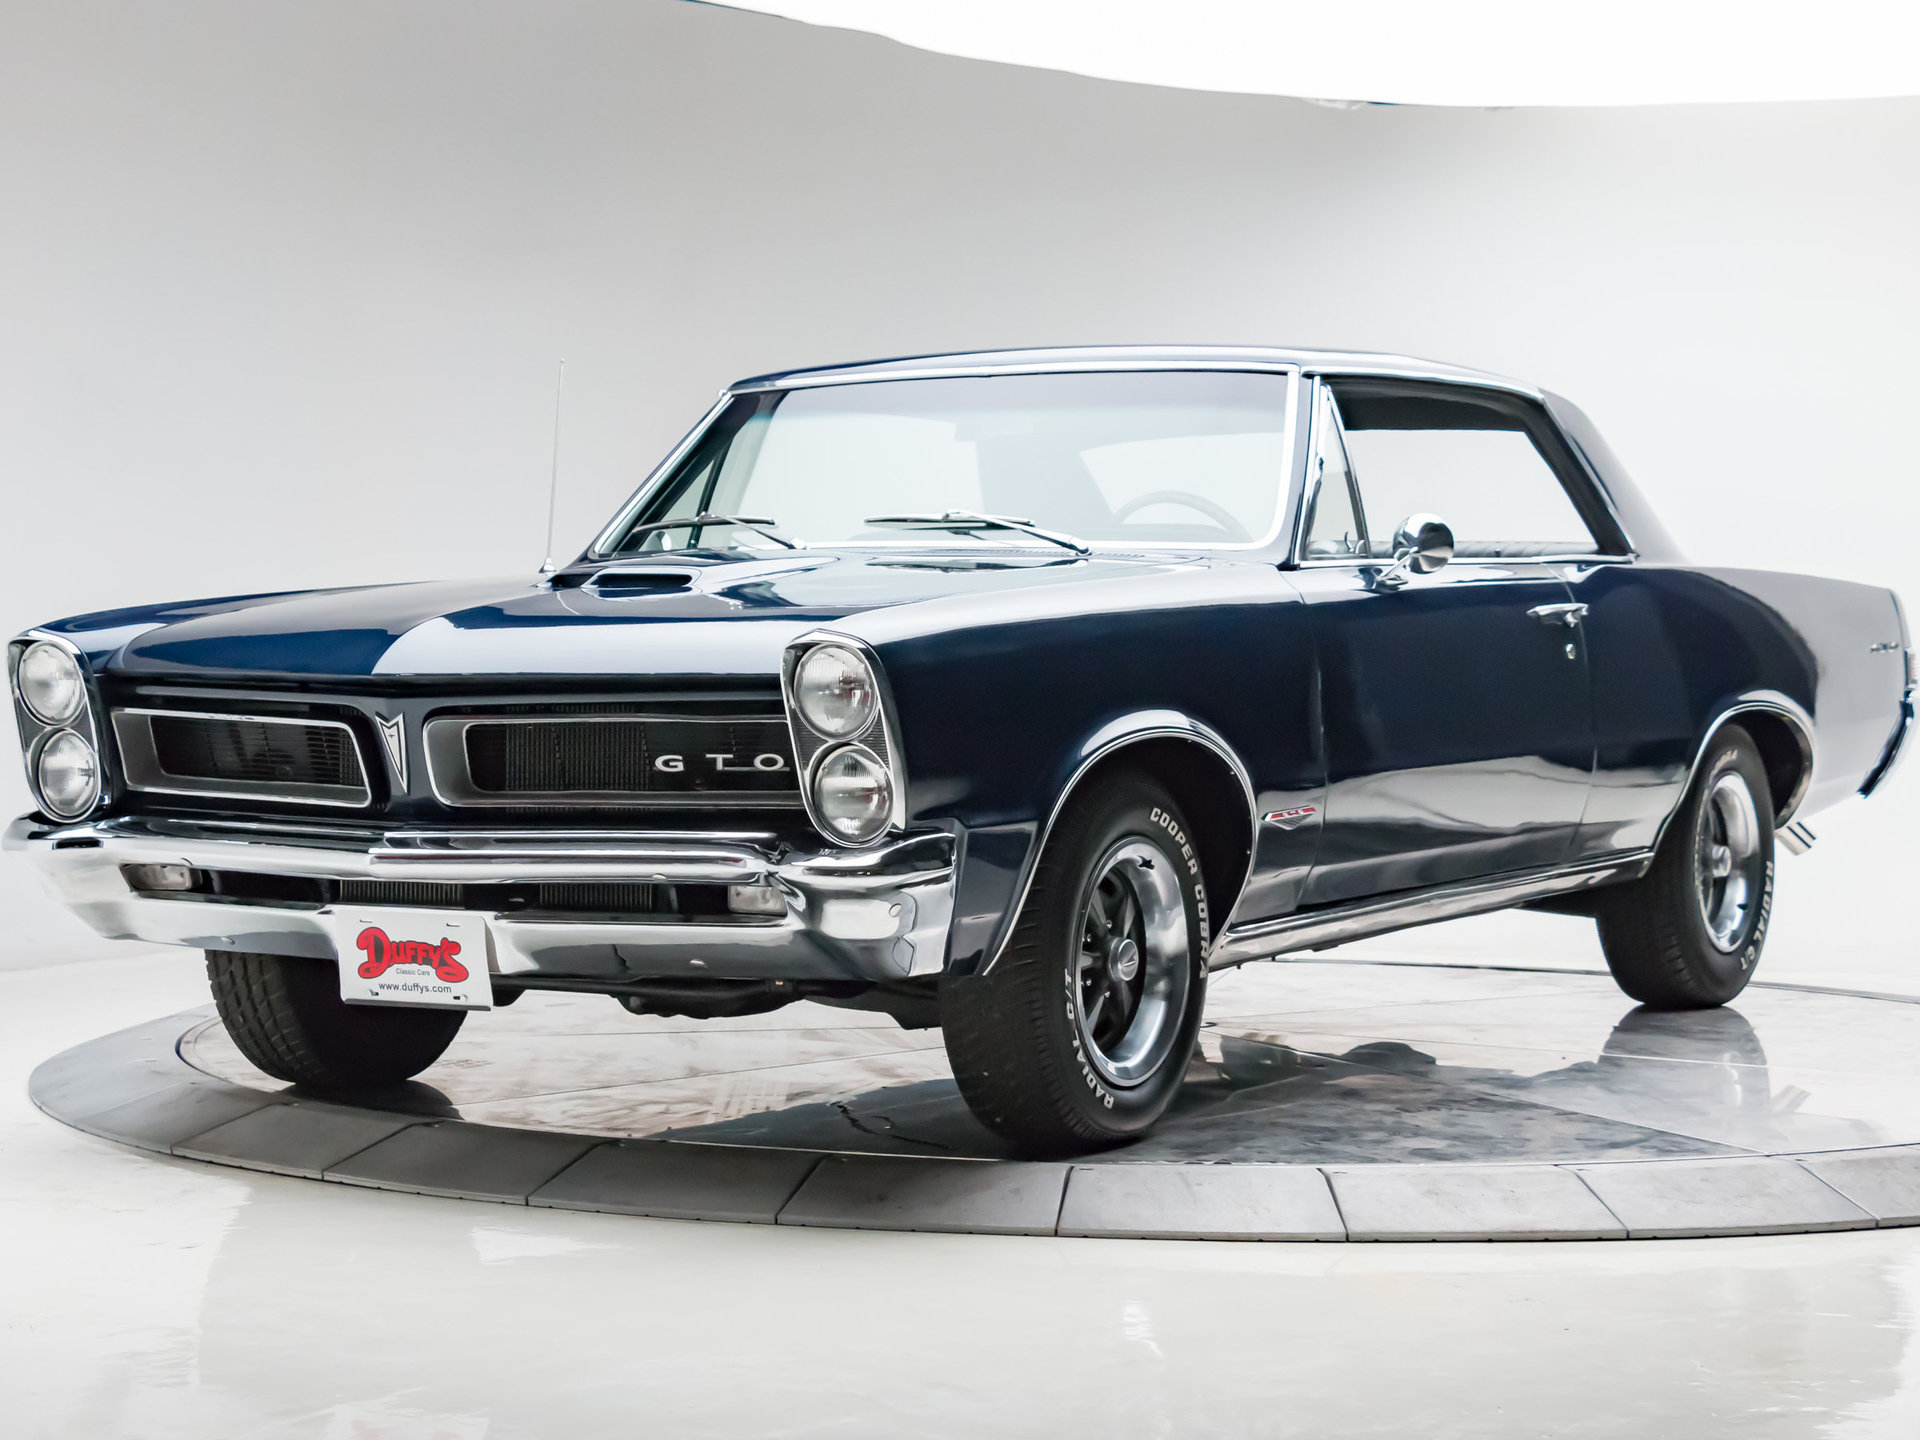 1965 pontiac gto duffy 39 s classic cars. Black Bedroom Furniture Sets. Home Design Ideas